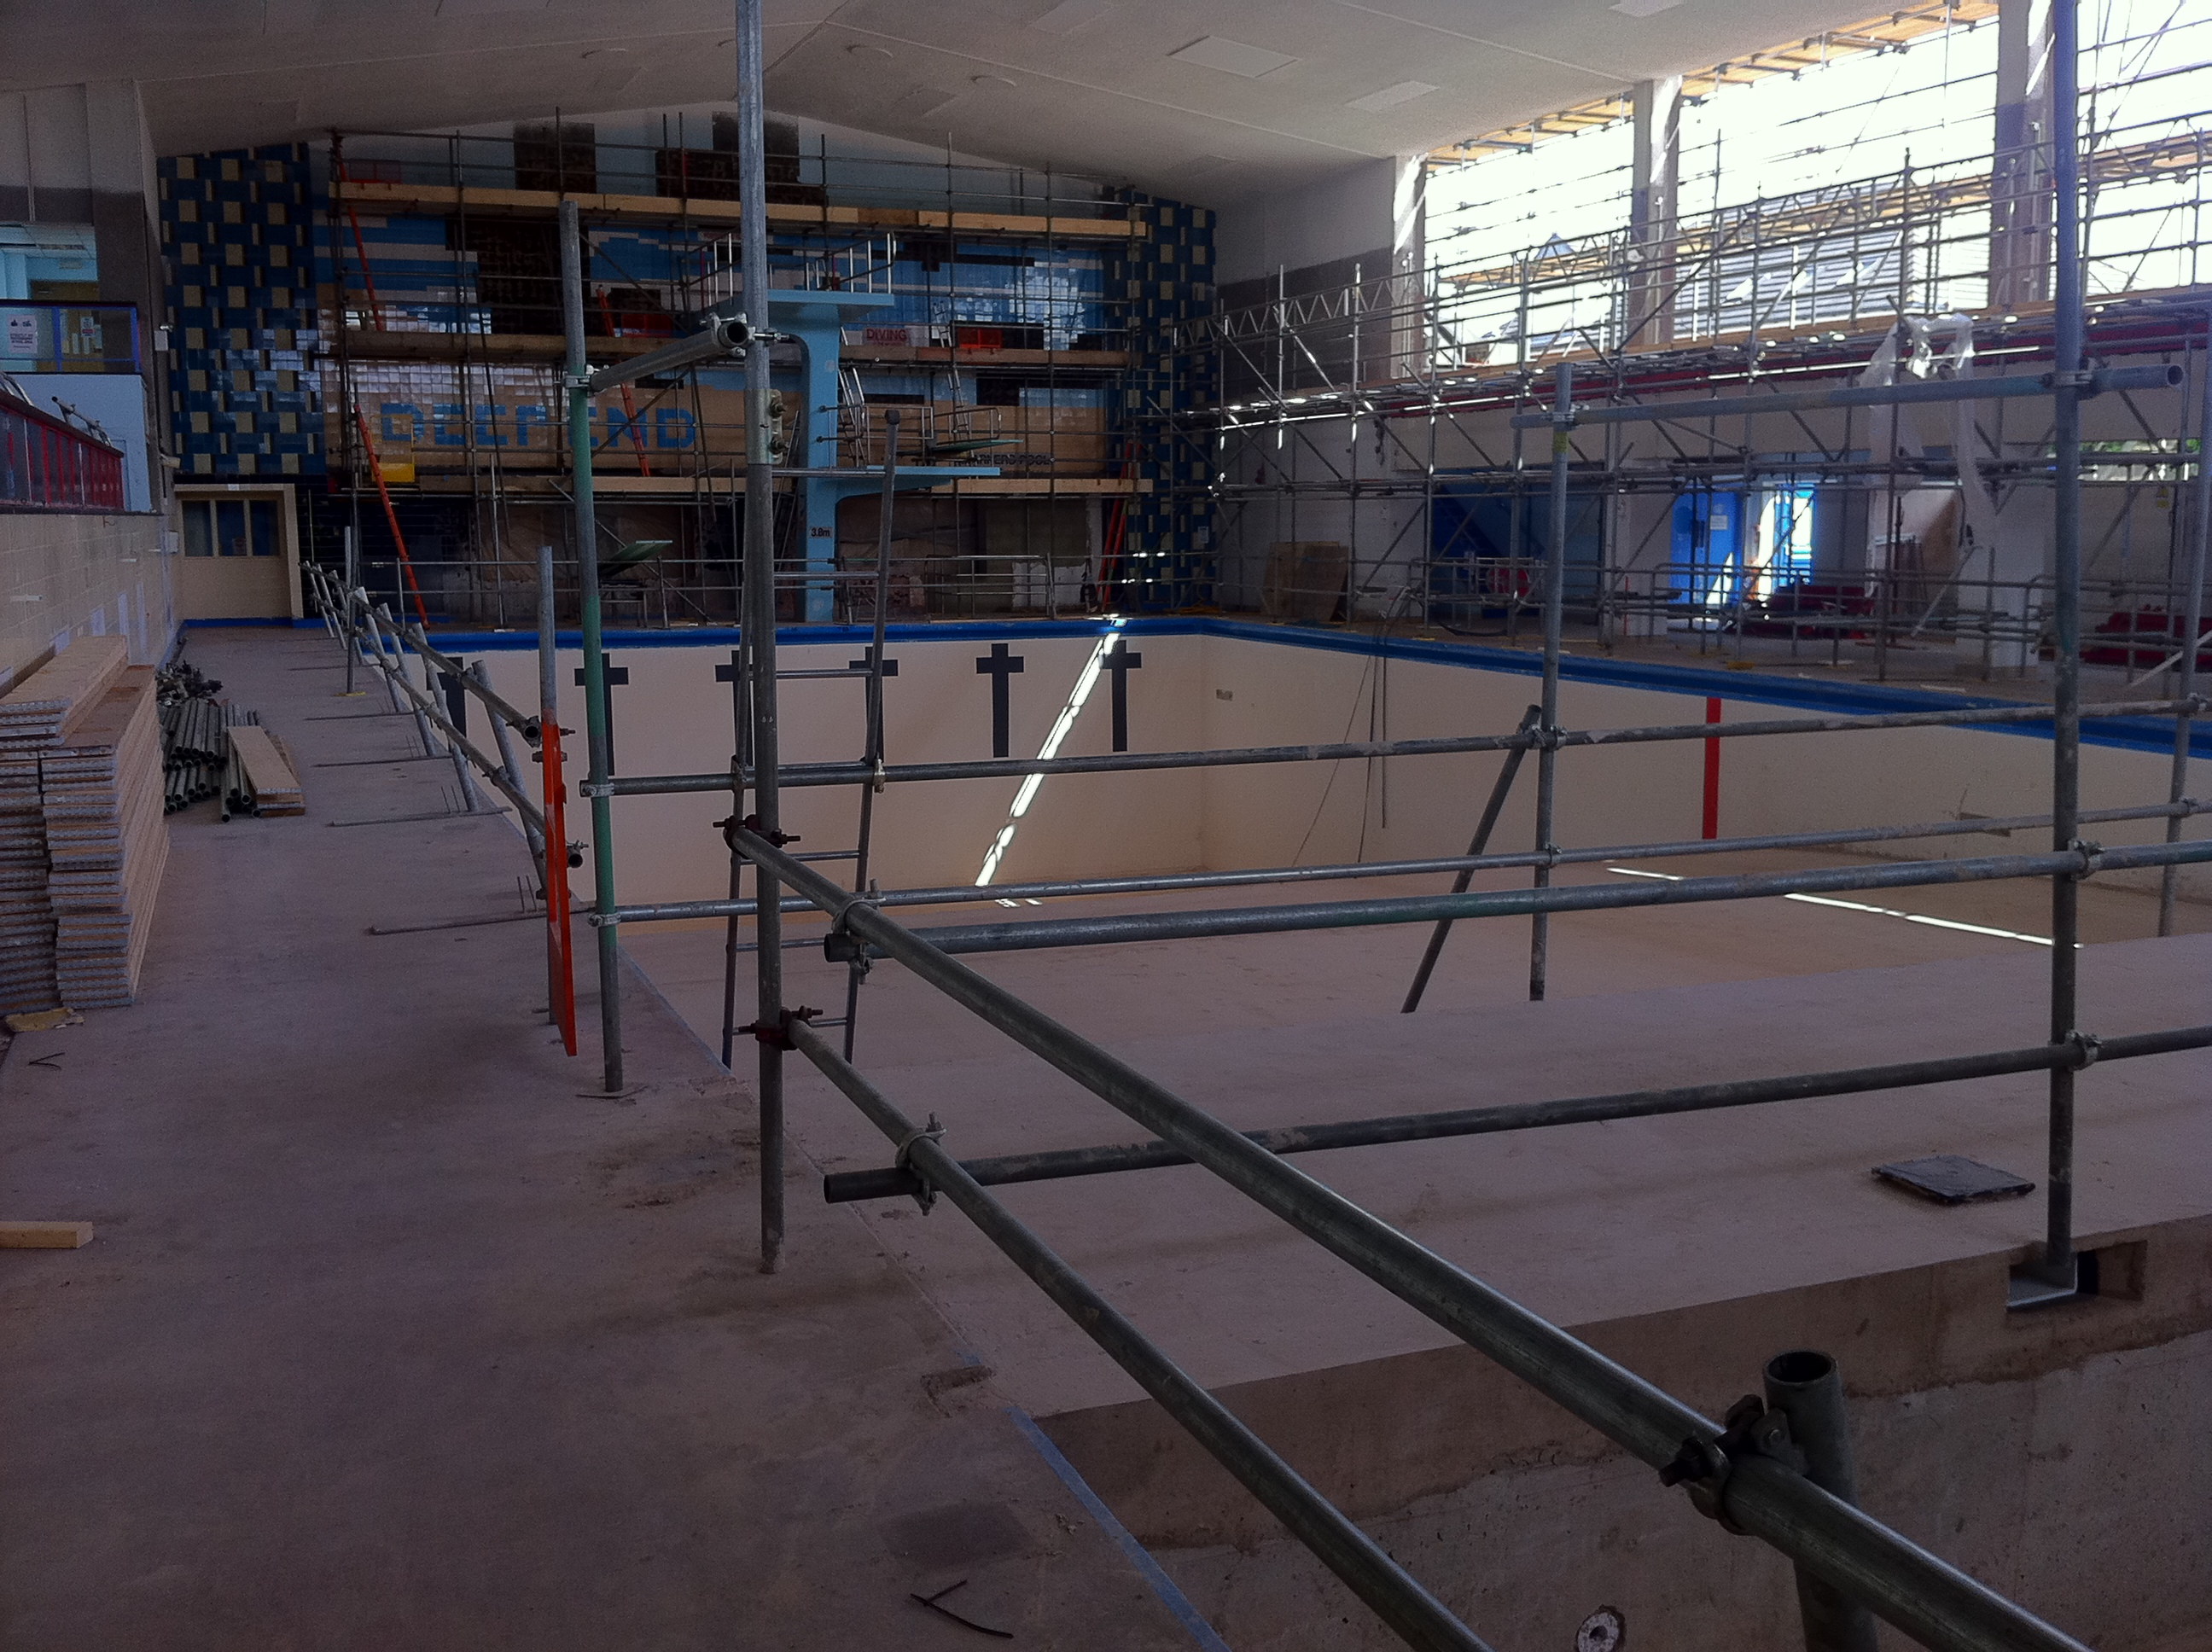 kingswood-leisure-centre-image-4